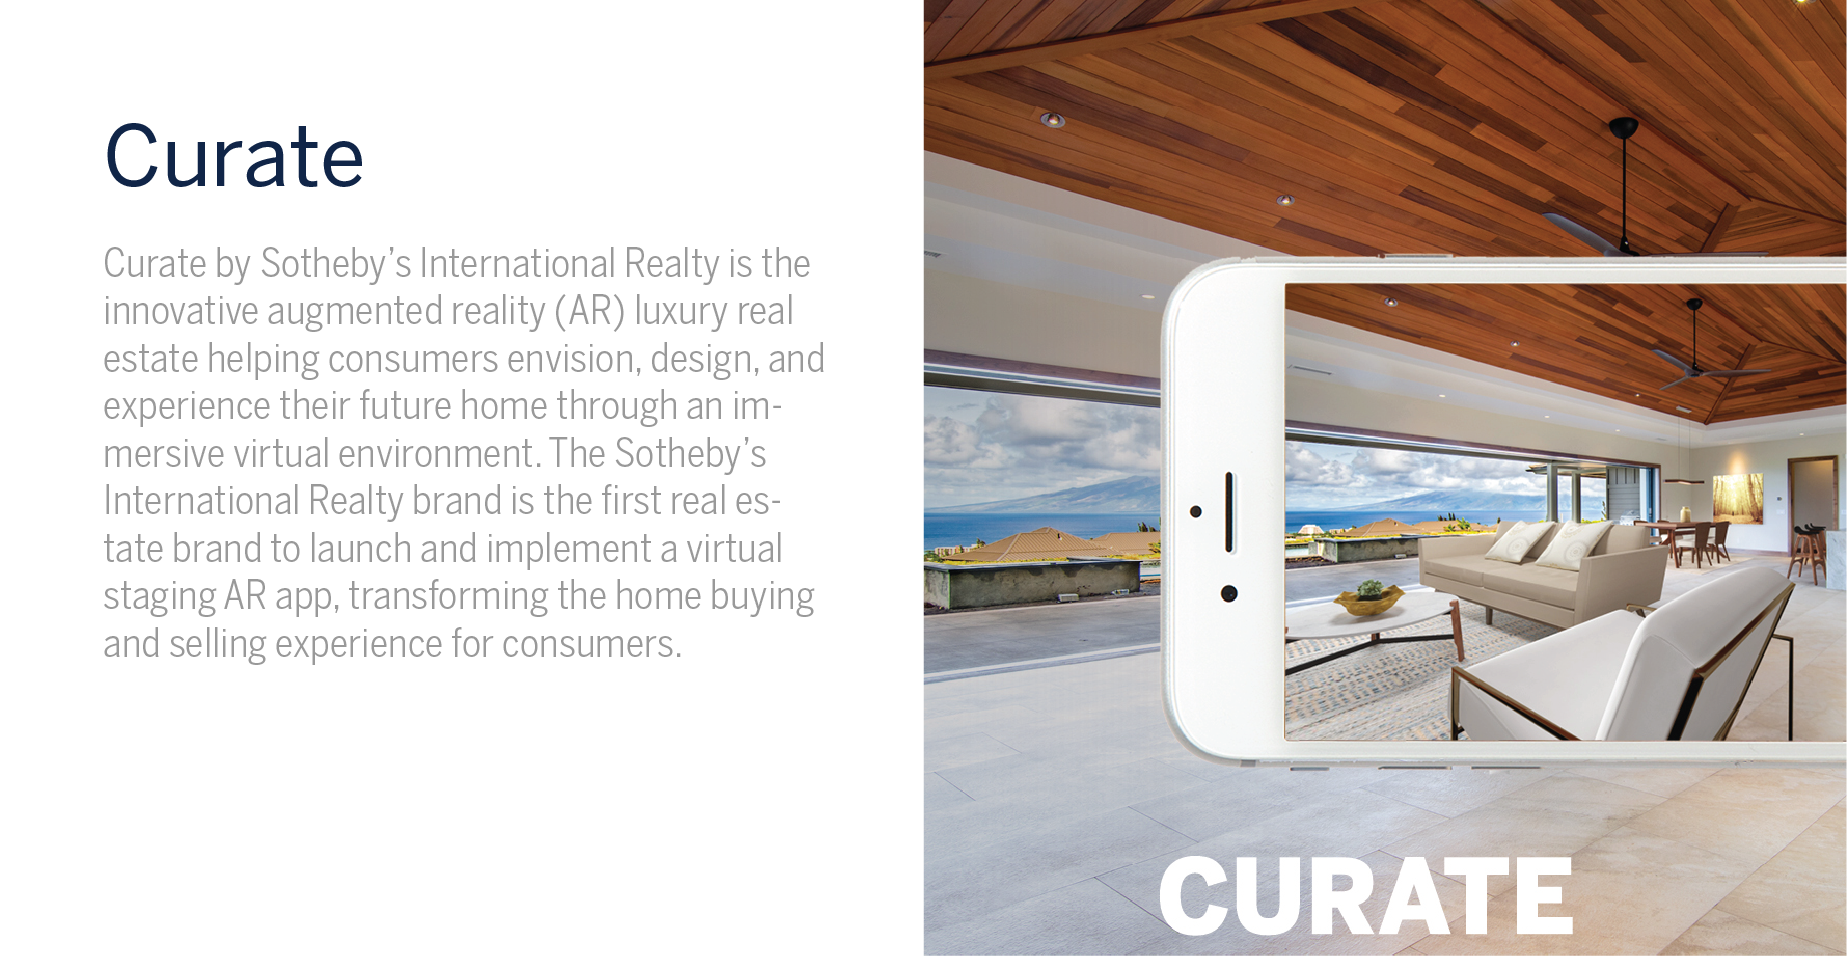 Curate App - Curate by Sotheby's International Realty is the innovative augmented reality (AR) luxury real estate helping consumers envision, design, and experience their future home through an immersive virtual environment. The Sotheby's International Realty brand is the first real estate brand to launch and implement a virtual staging AR app, transforming the home buying and selling experience for consumers.